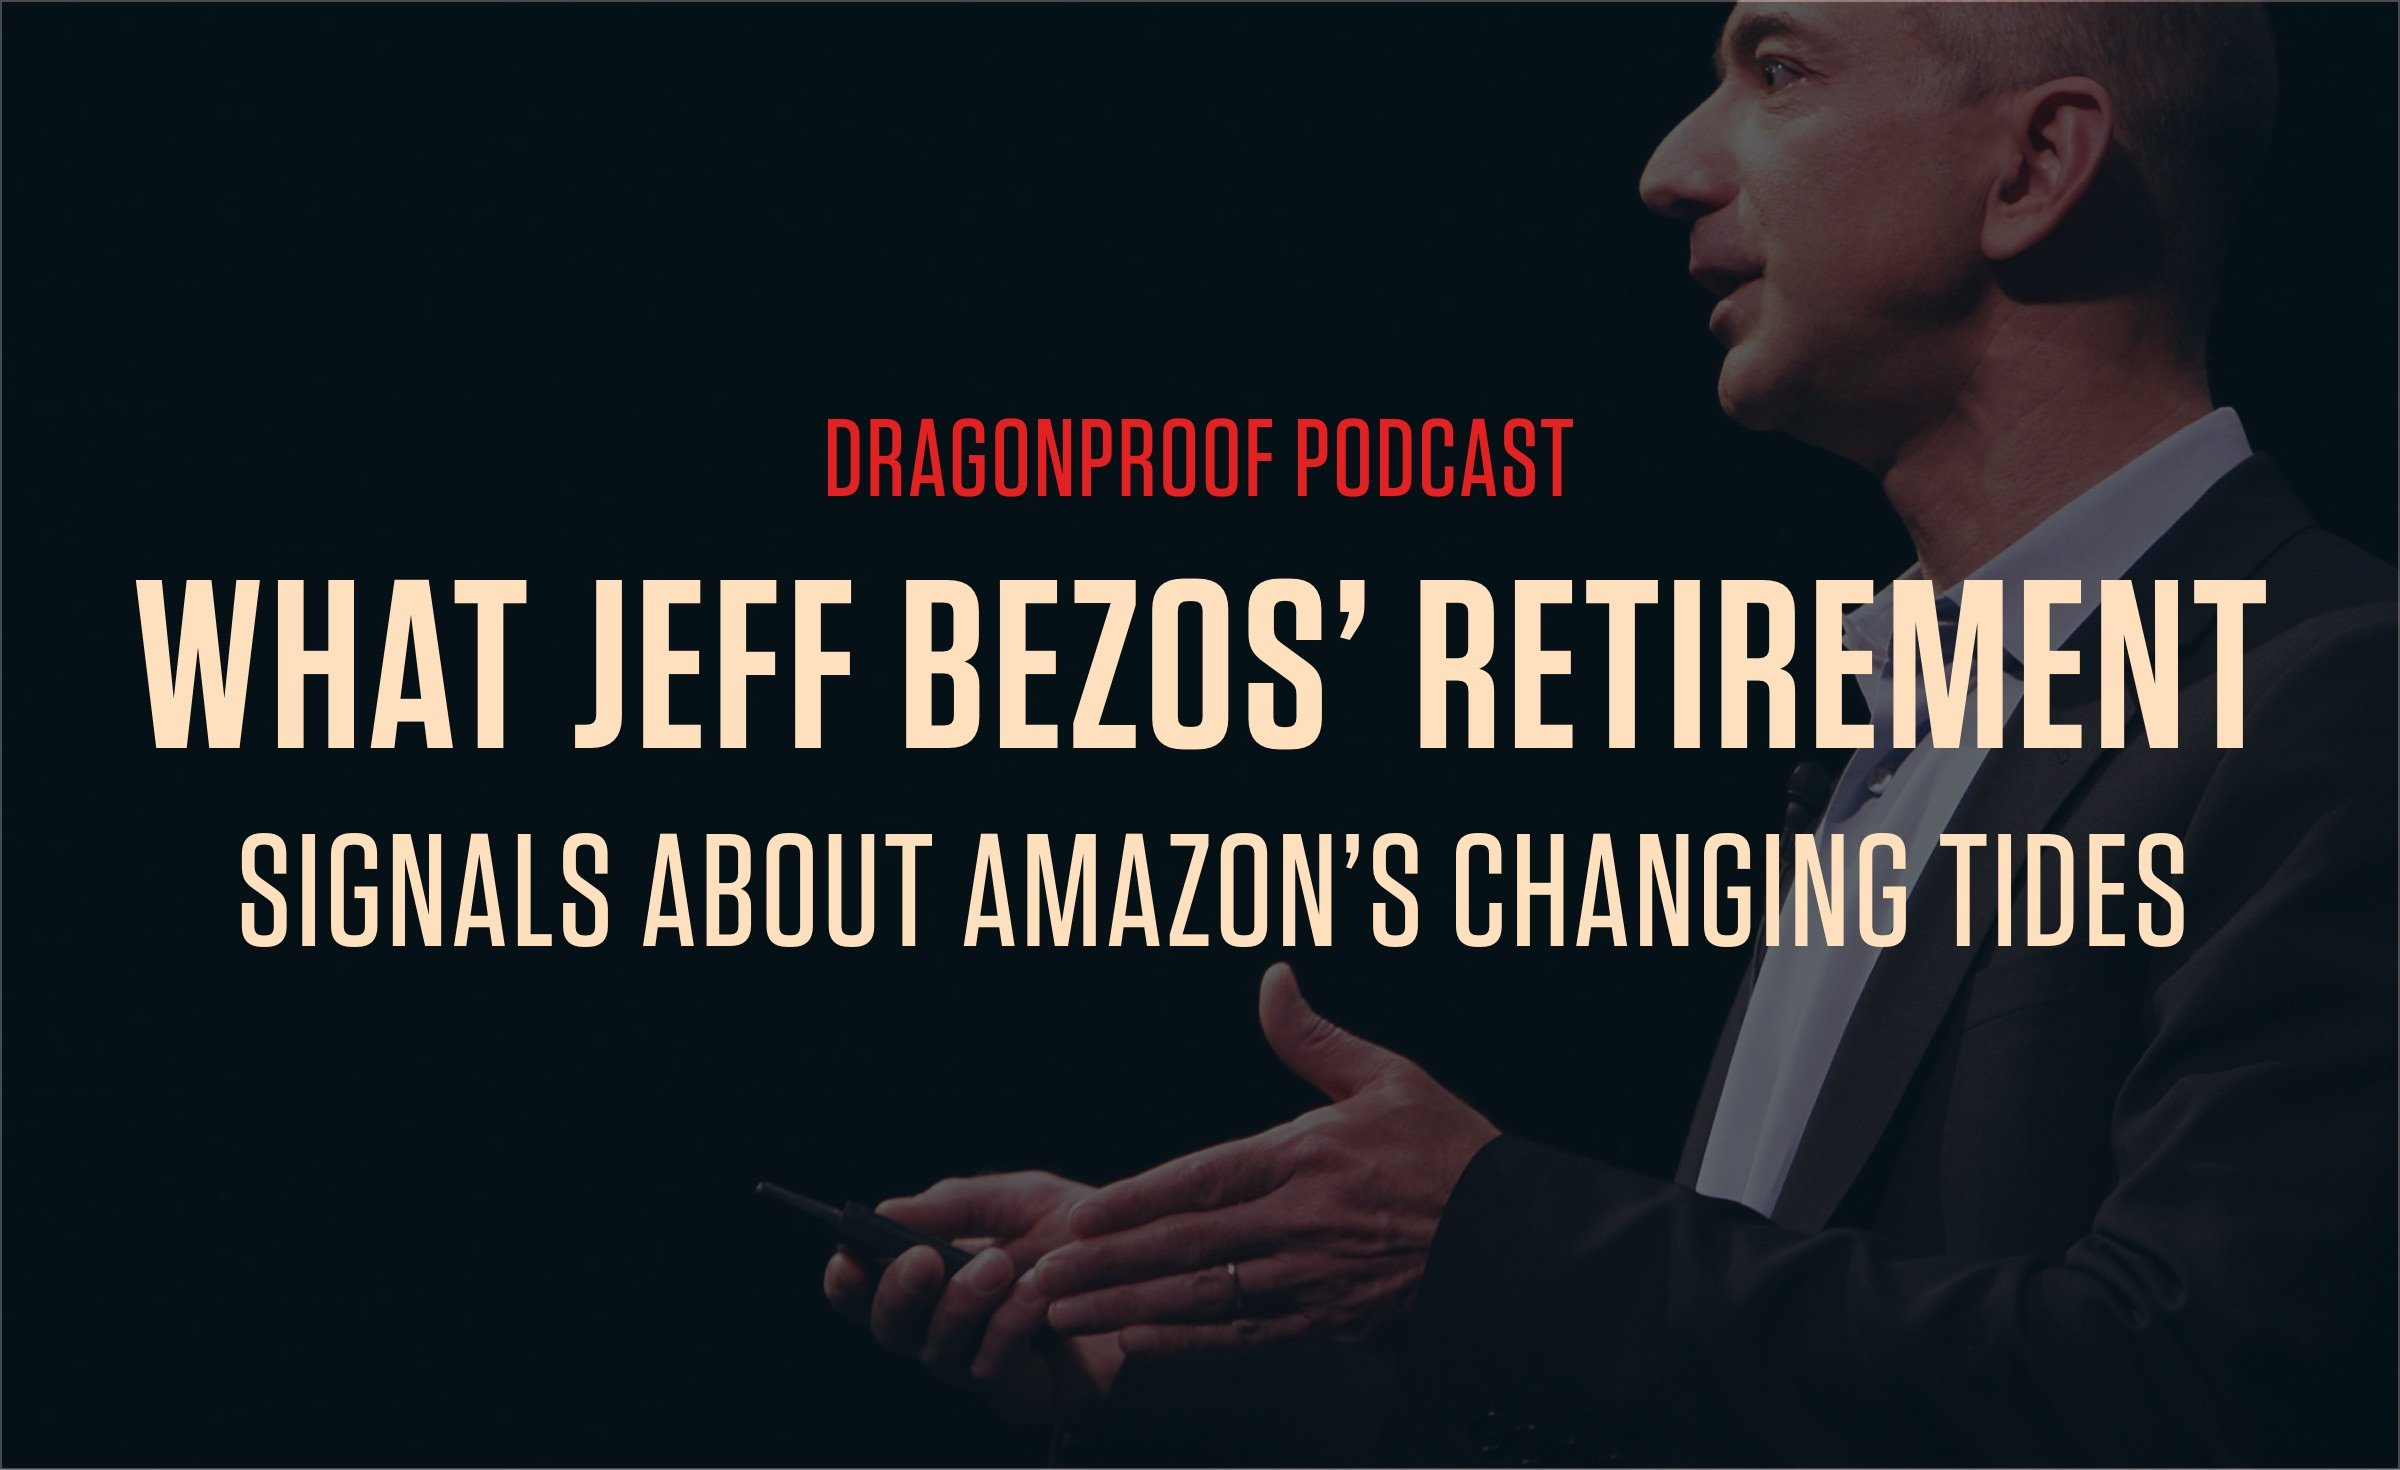 Dragonproof Podcast Title Card - What Jeff Bezos' Retirement Signals About Amazon's Changing Tides